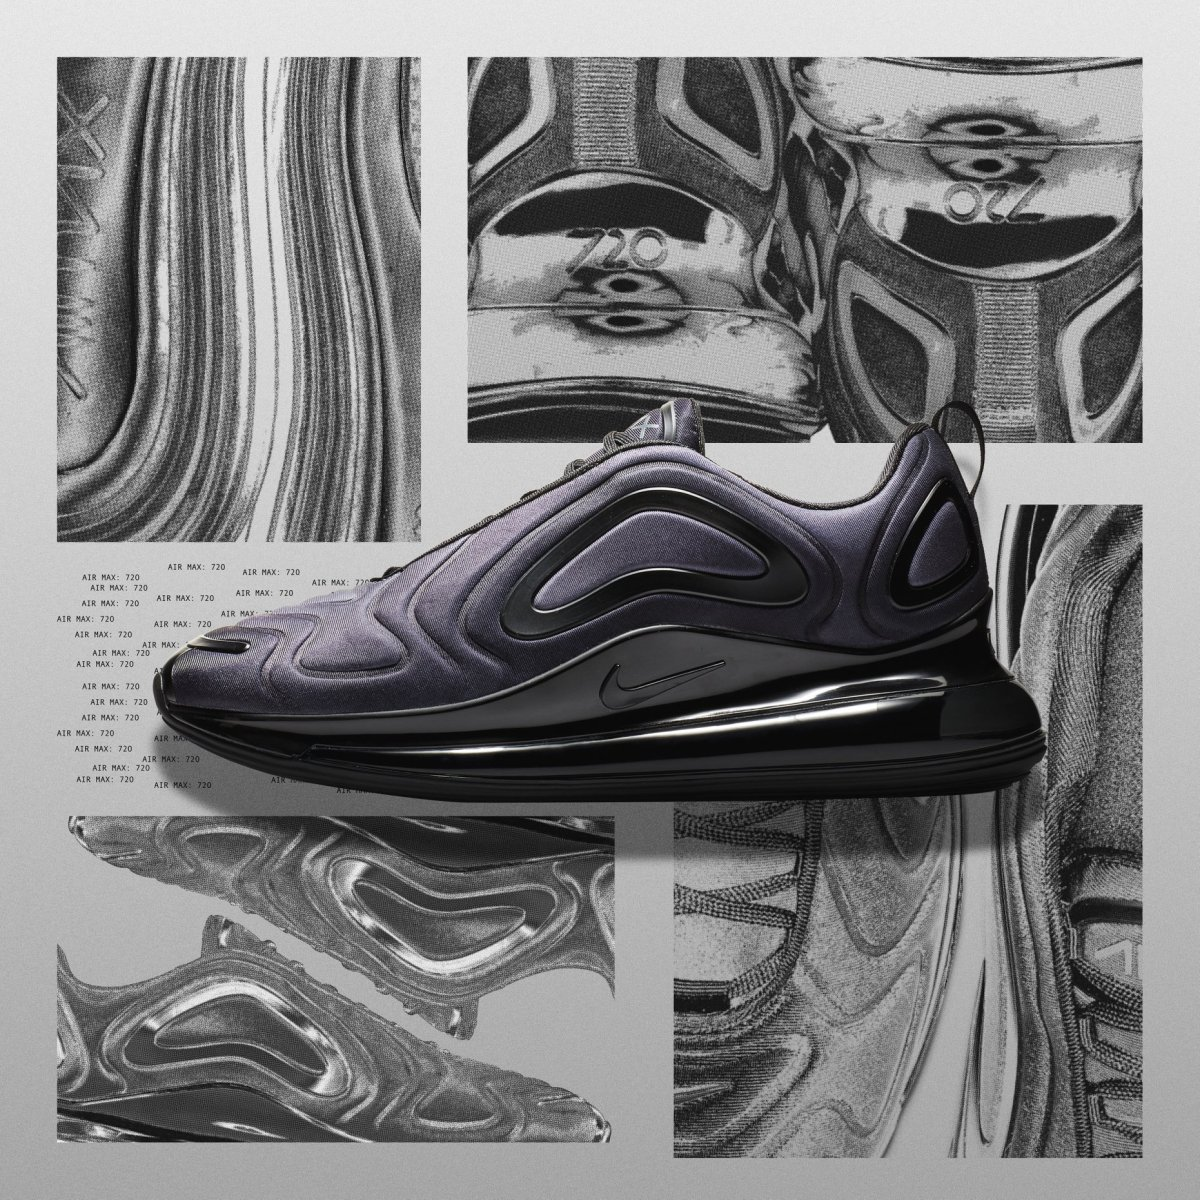 superior quality 98713 45263 How To Get The New Air Max 720 – aahh